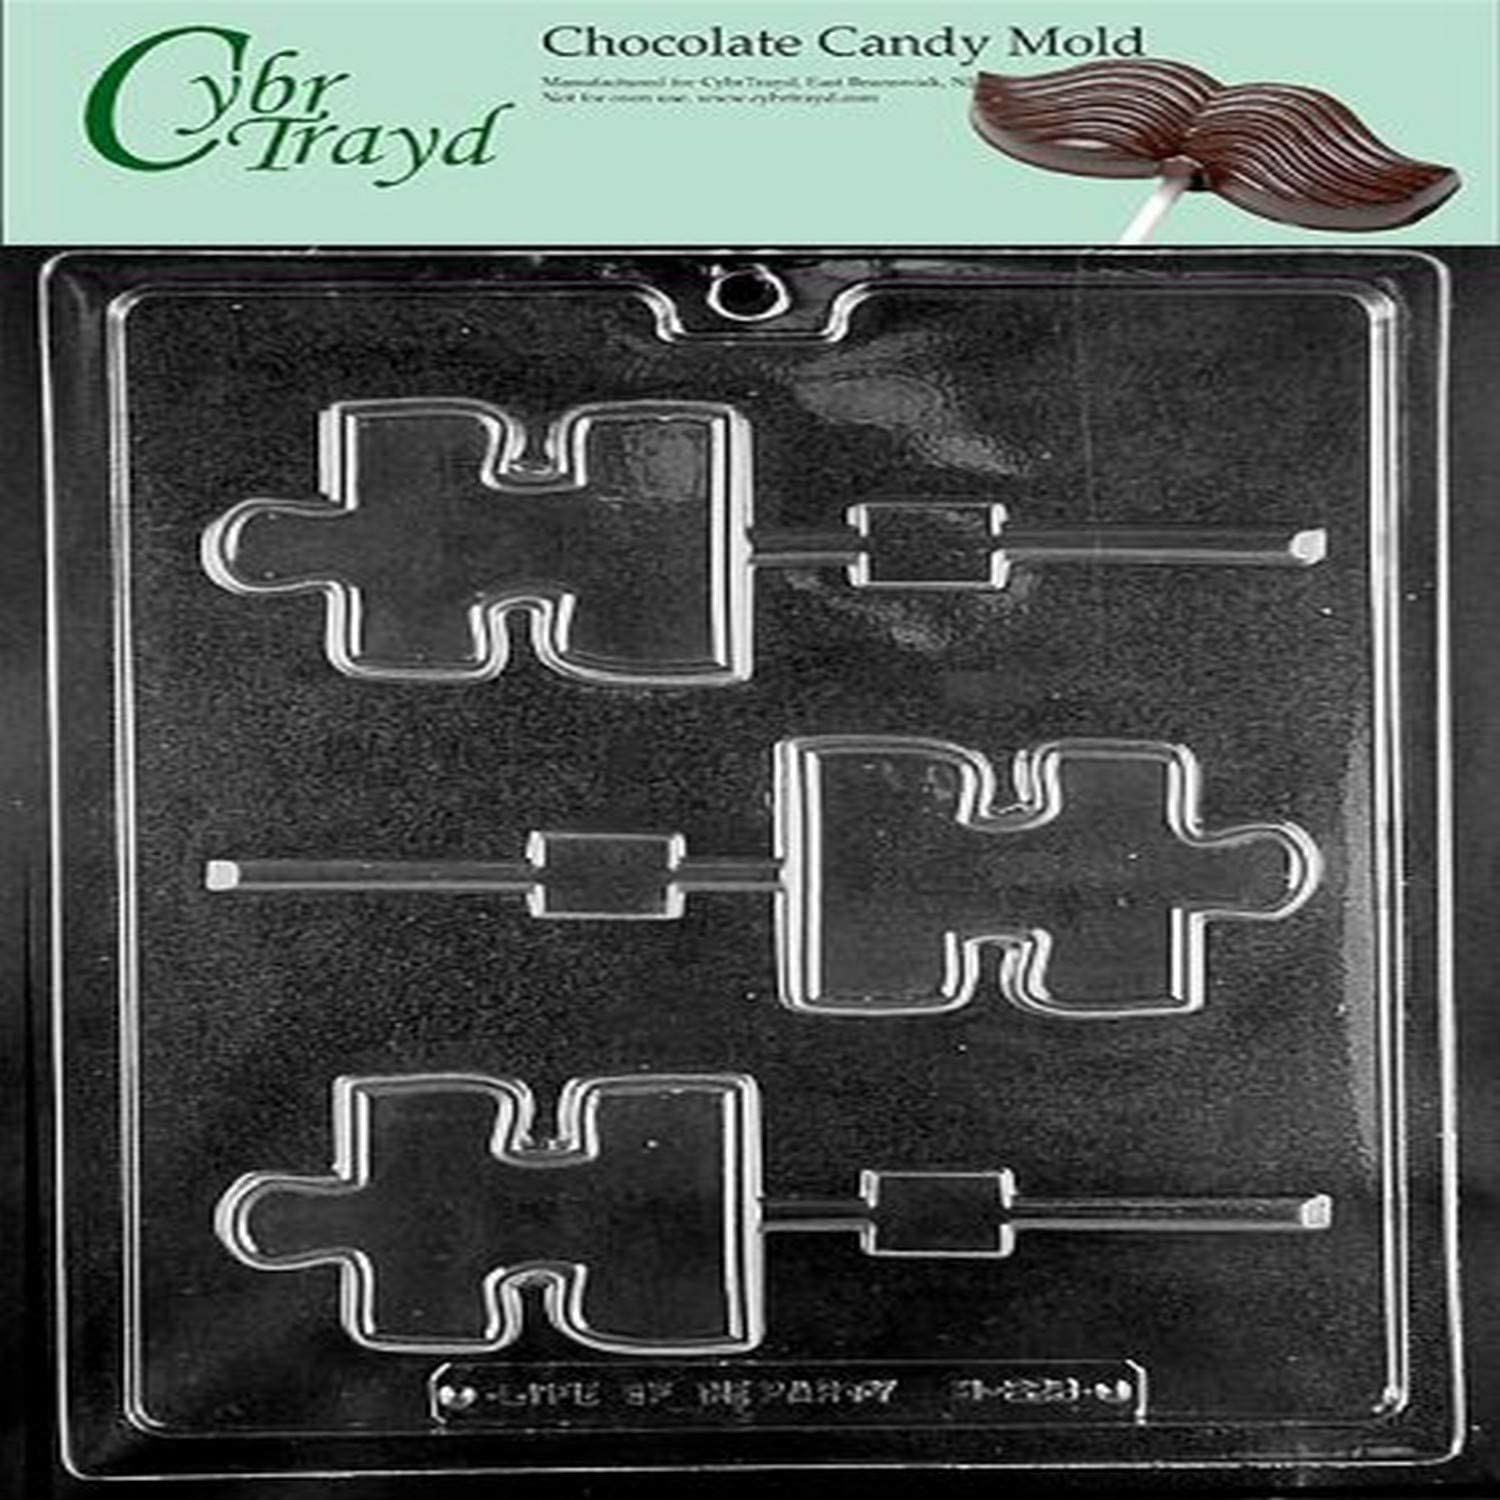 Cybrtrayd M223 Puzzle Piece Lolly Autism Awareness Miscellaneous Chocolate Candy Mold